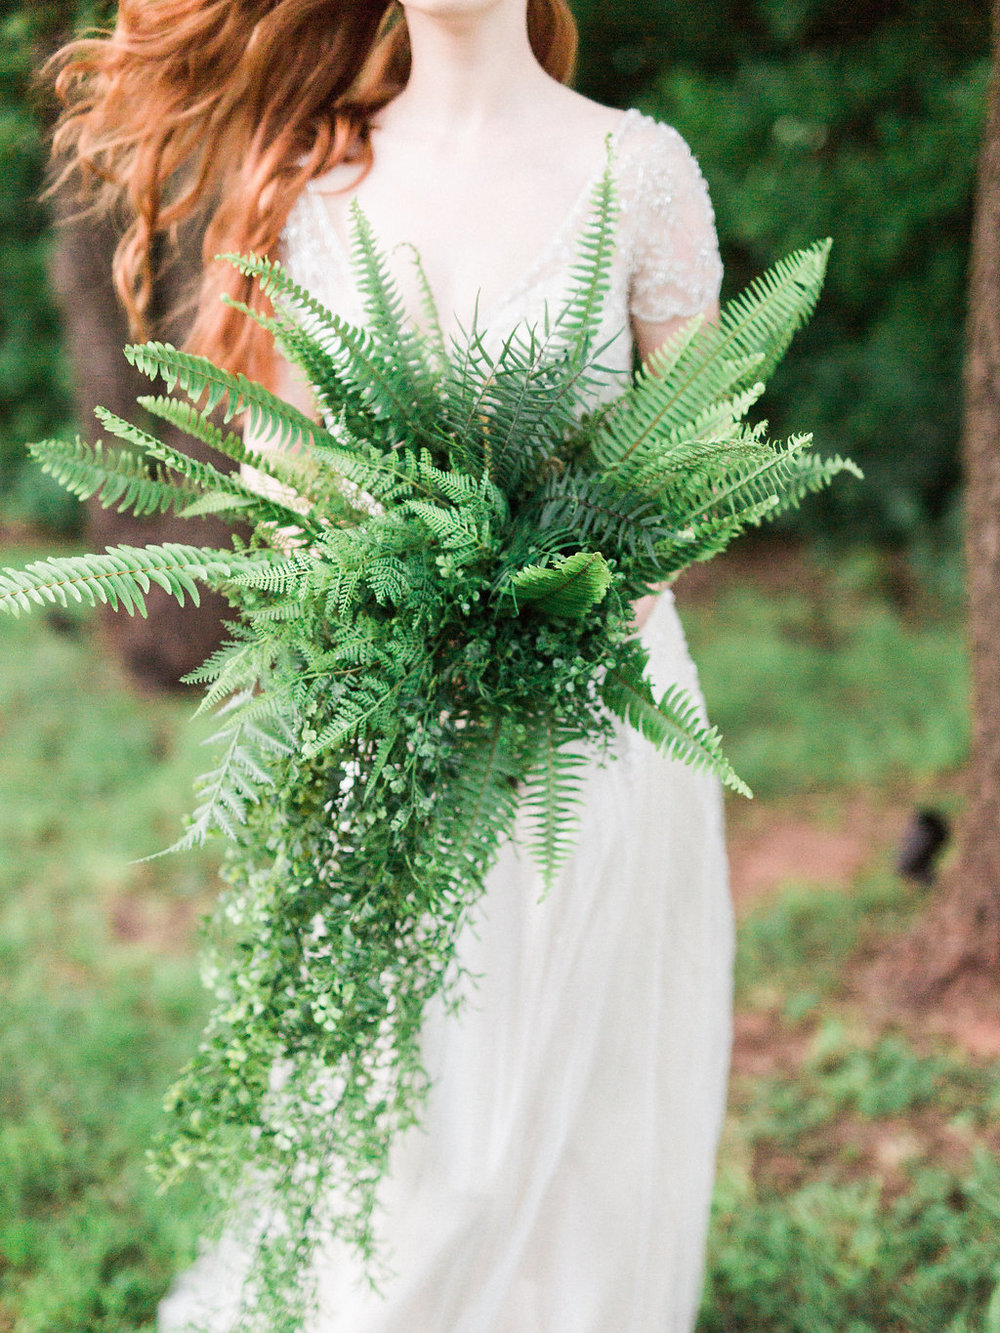 The most beautiful greenery and ferns made a fresh, unique bouquet!